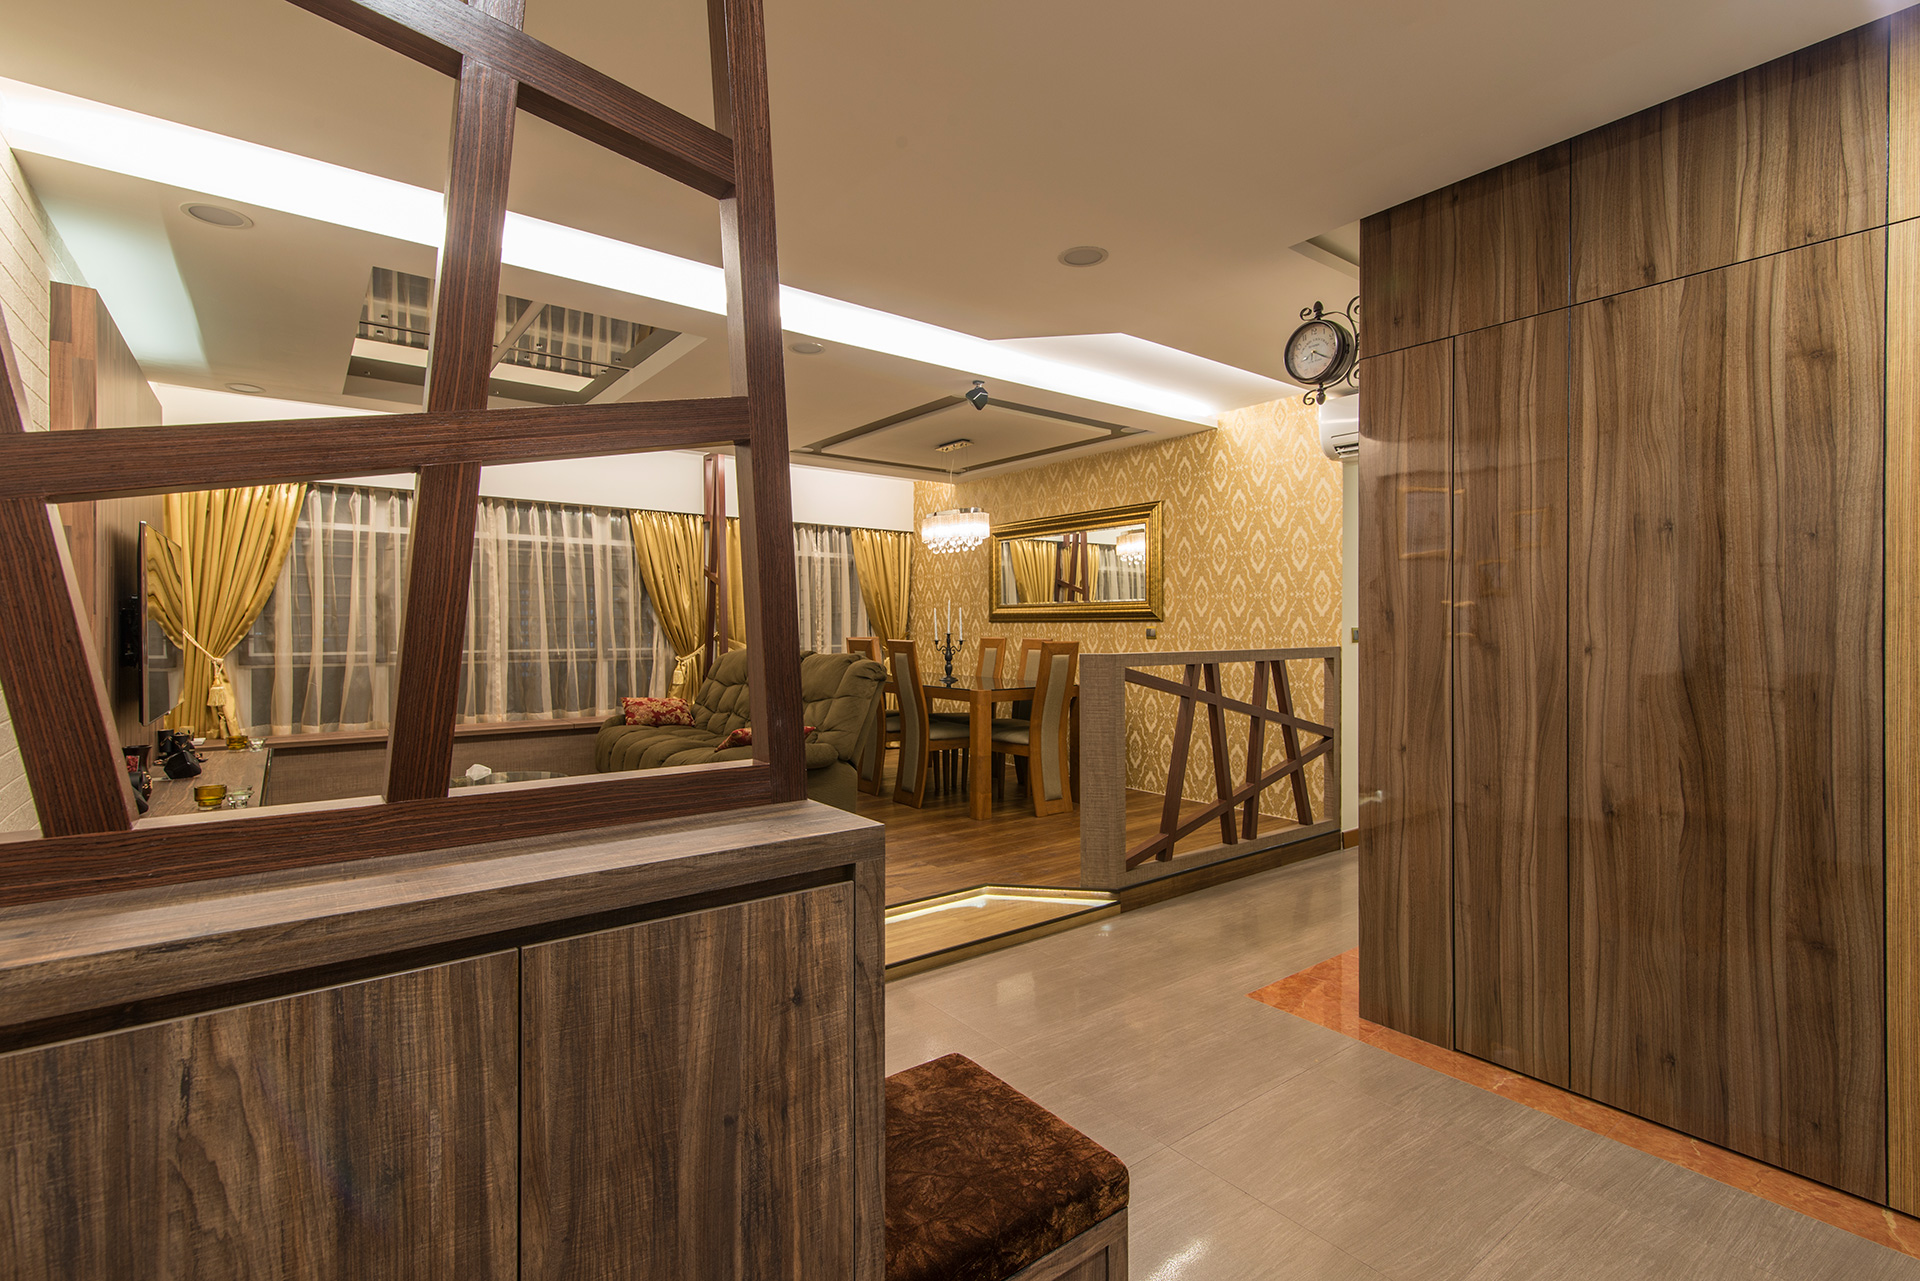 Country, Rustic Design - Dining Room - HDB 5 Room - Design by Ideal Design Interior Pte Ltd